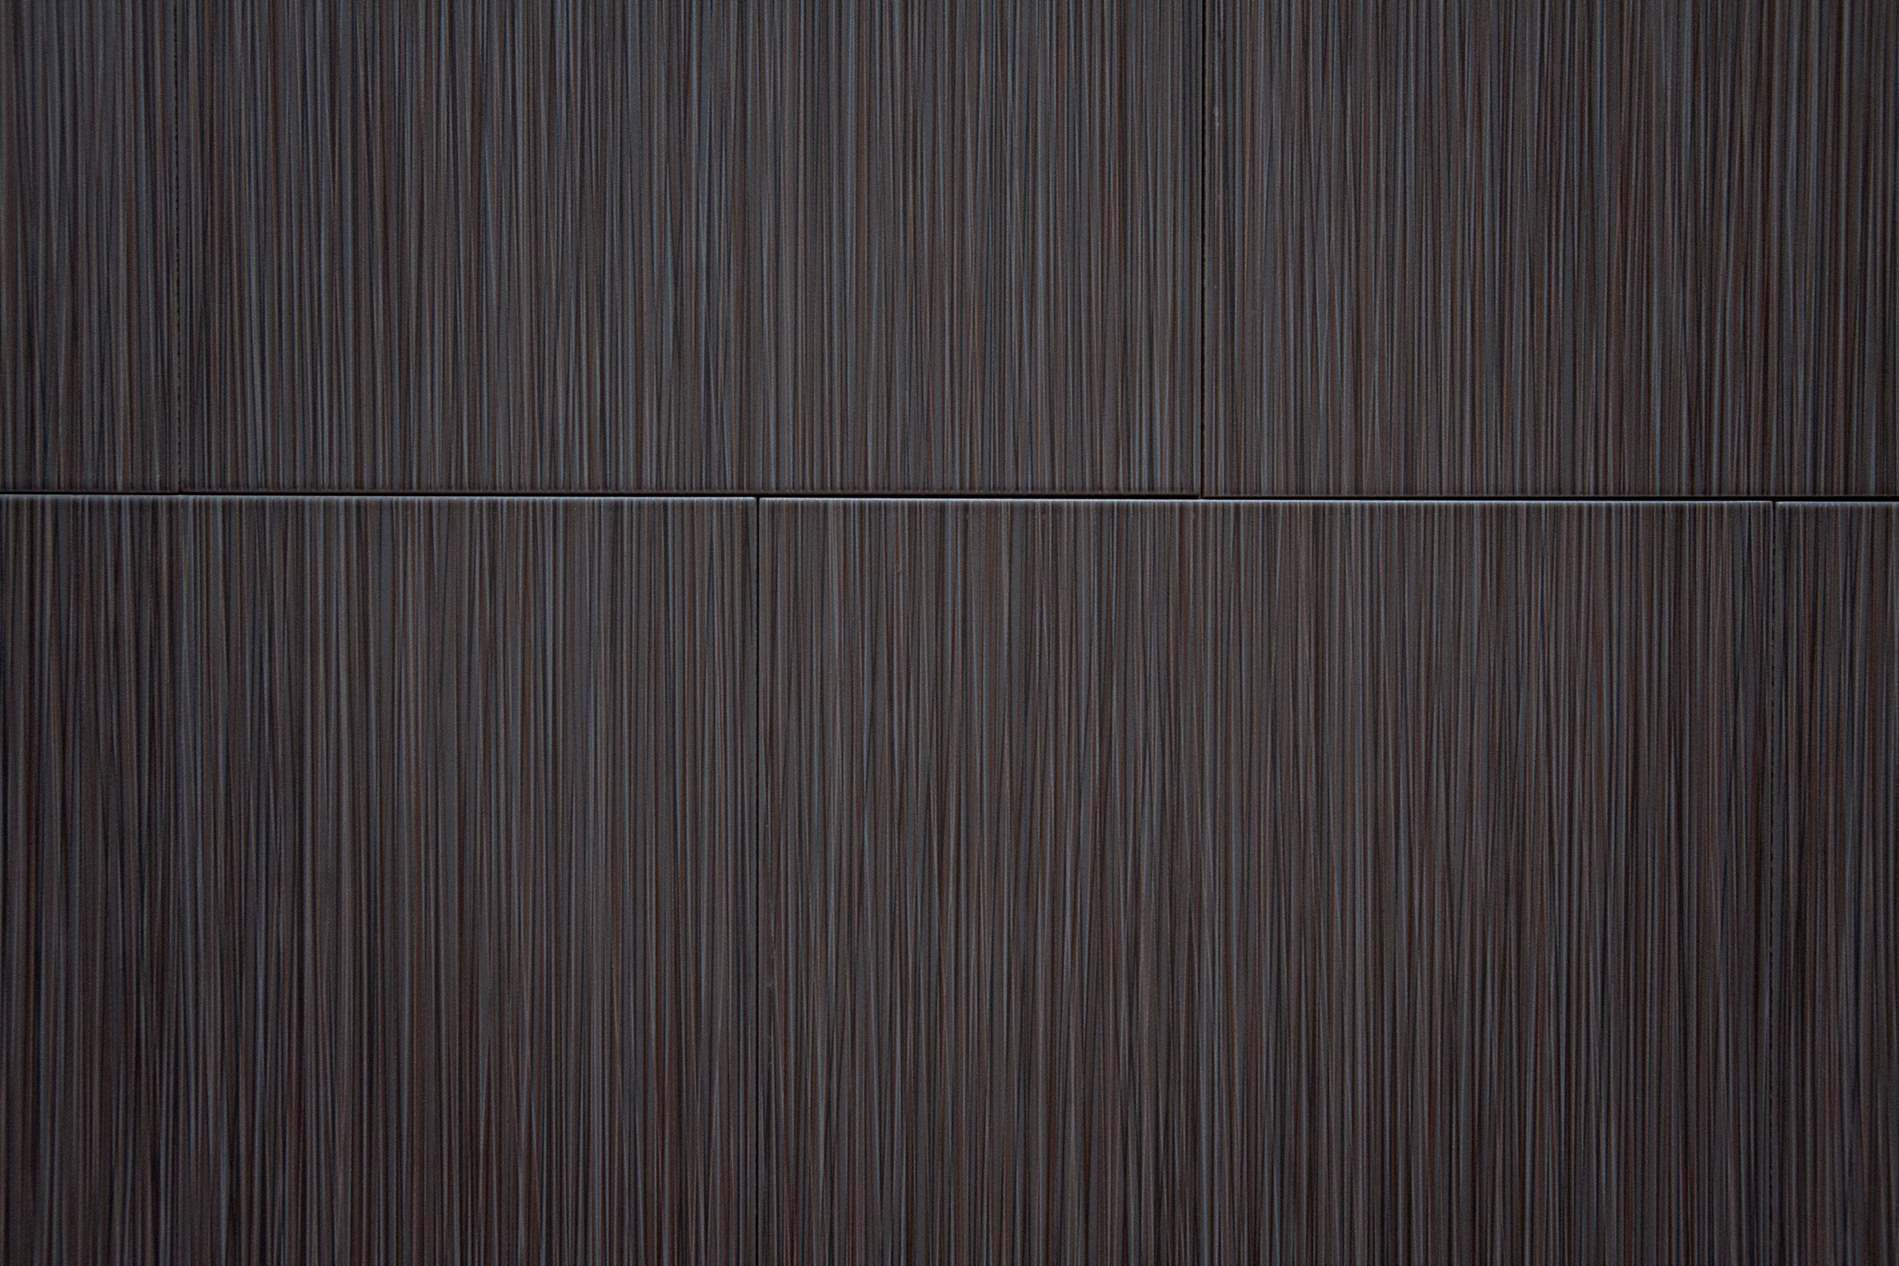 dark brown bamboo wood vertical stripes background photohdx